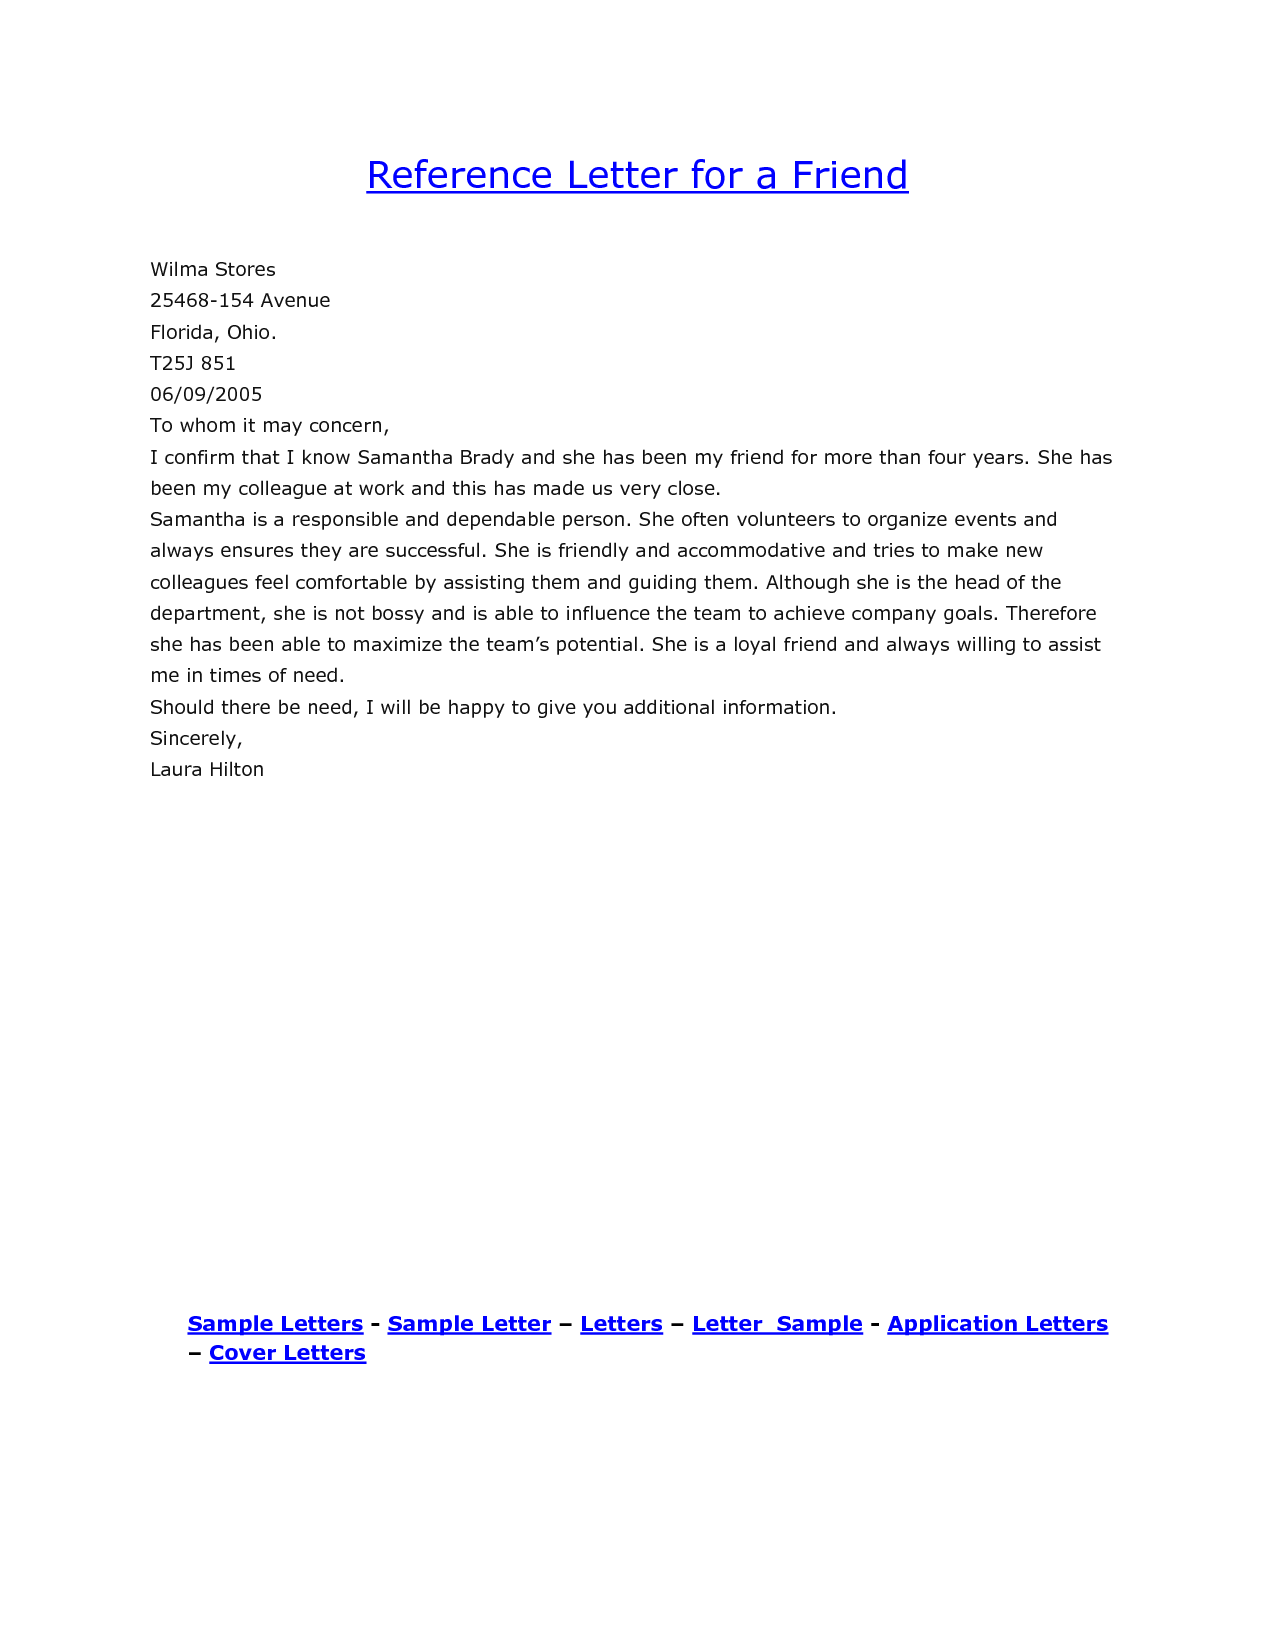 character reference for a friend sample reference letter for a friend cover letter 21462 | 4607e48d6b26f4785e1a96d36142d13b